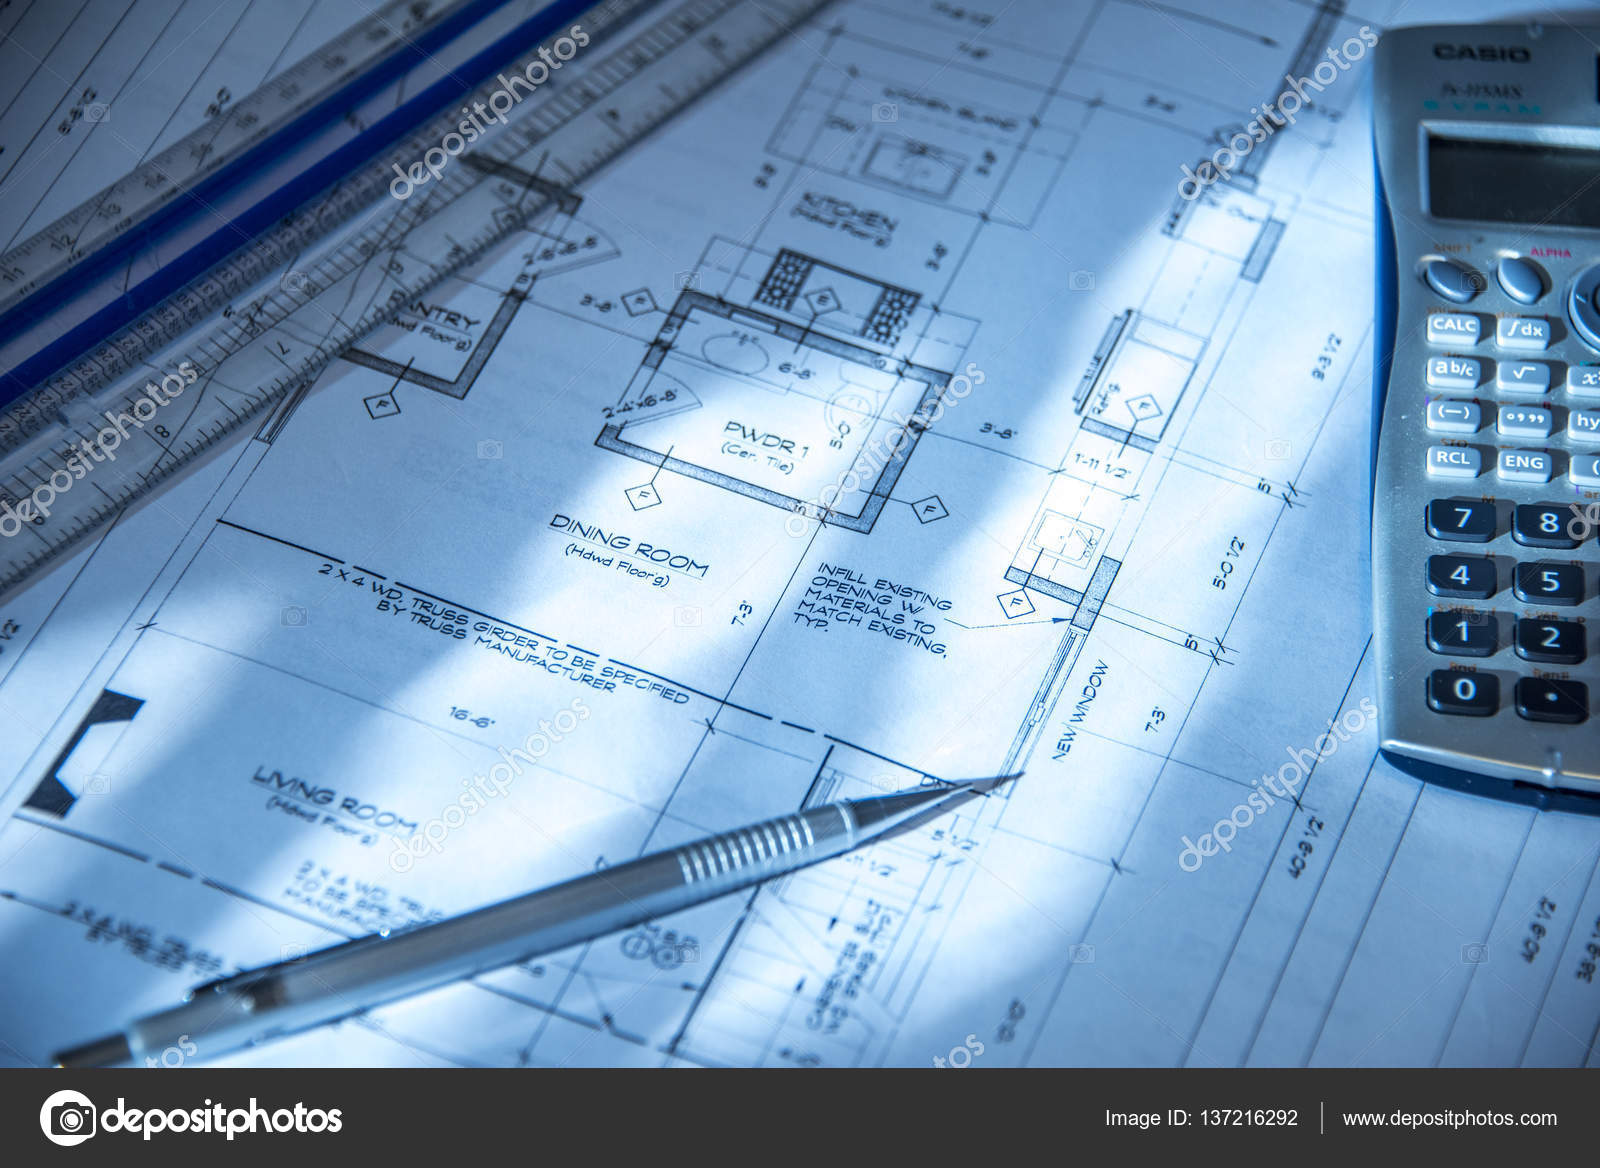 Architectural blueprints blueprint concepts topics construction architectural blueprints blueprint concepts topics construction industry document ink photo by studiodin malvernweather Image collections